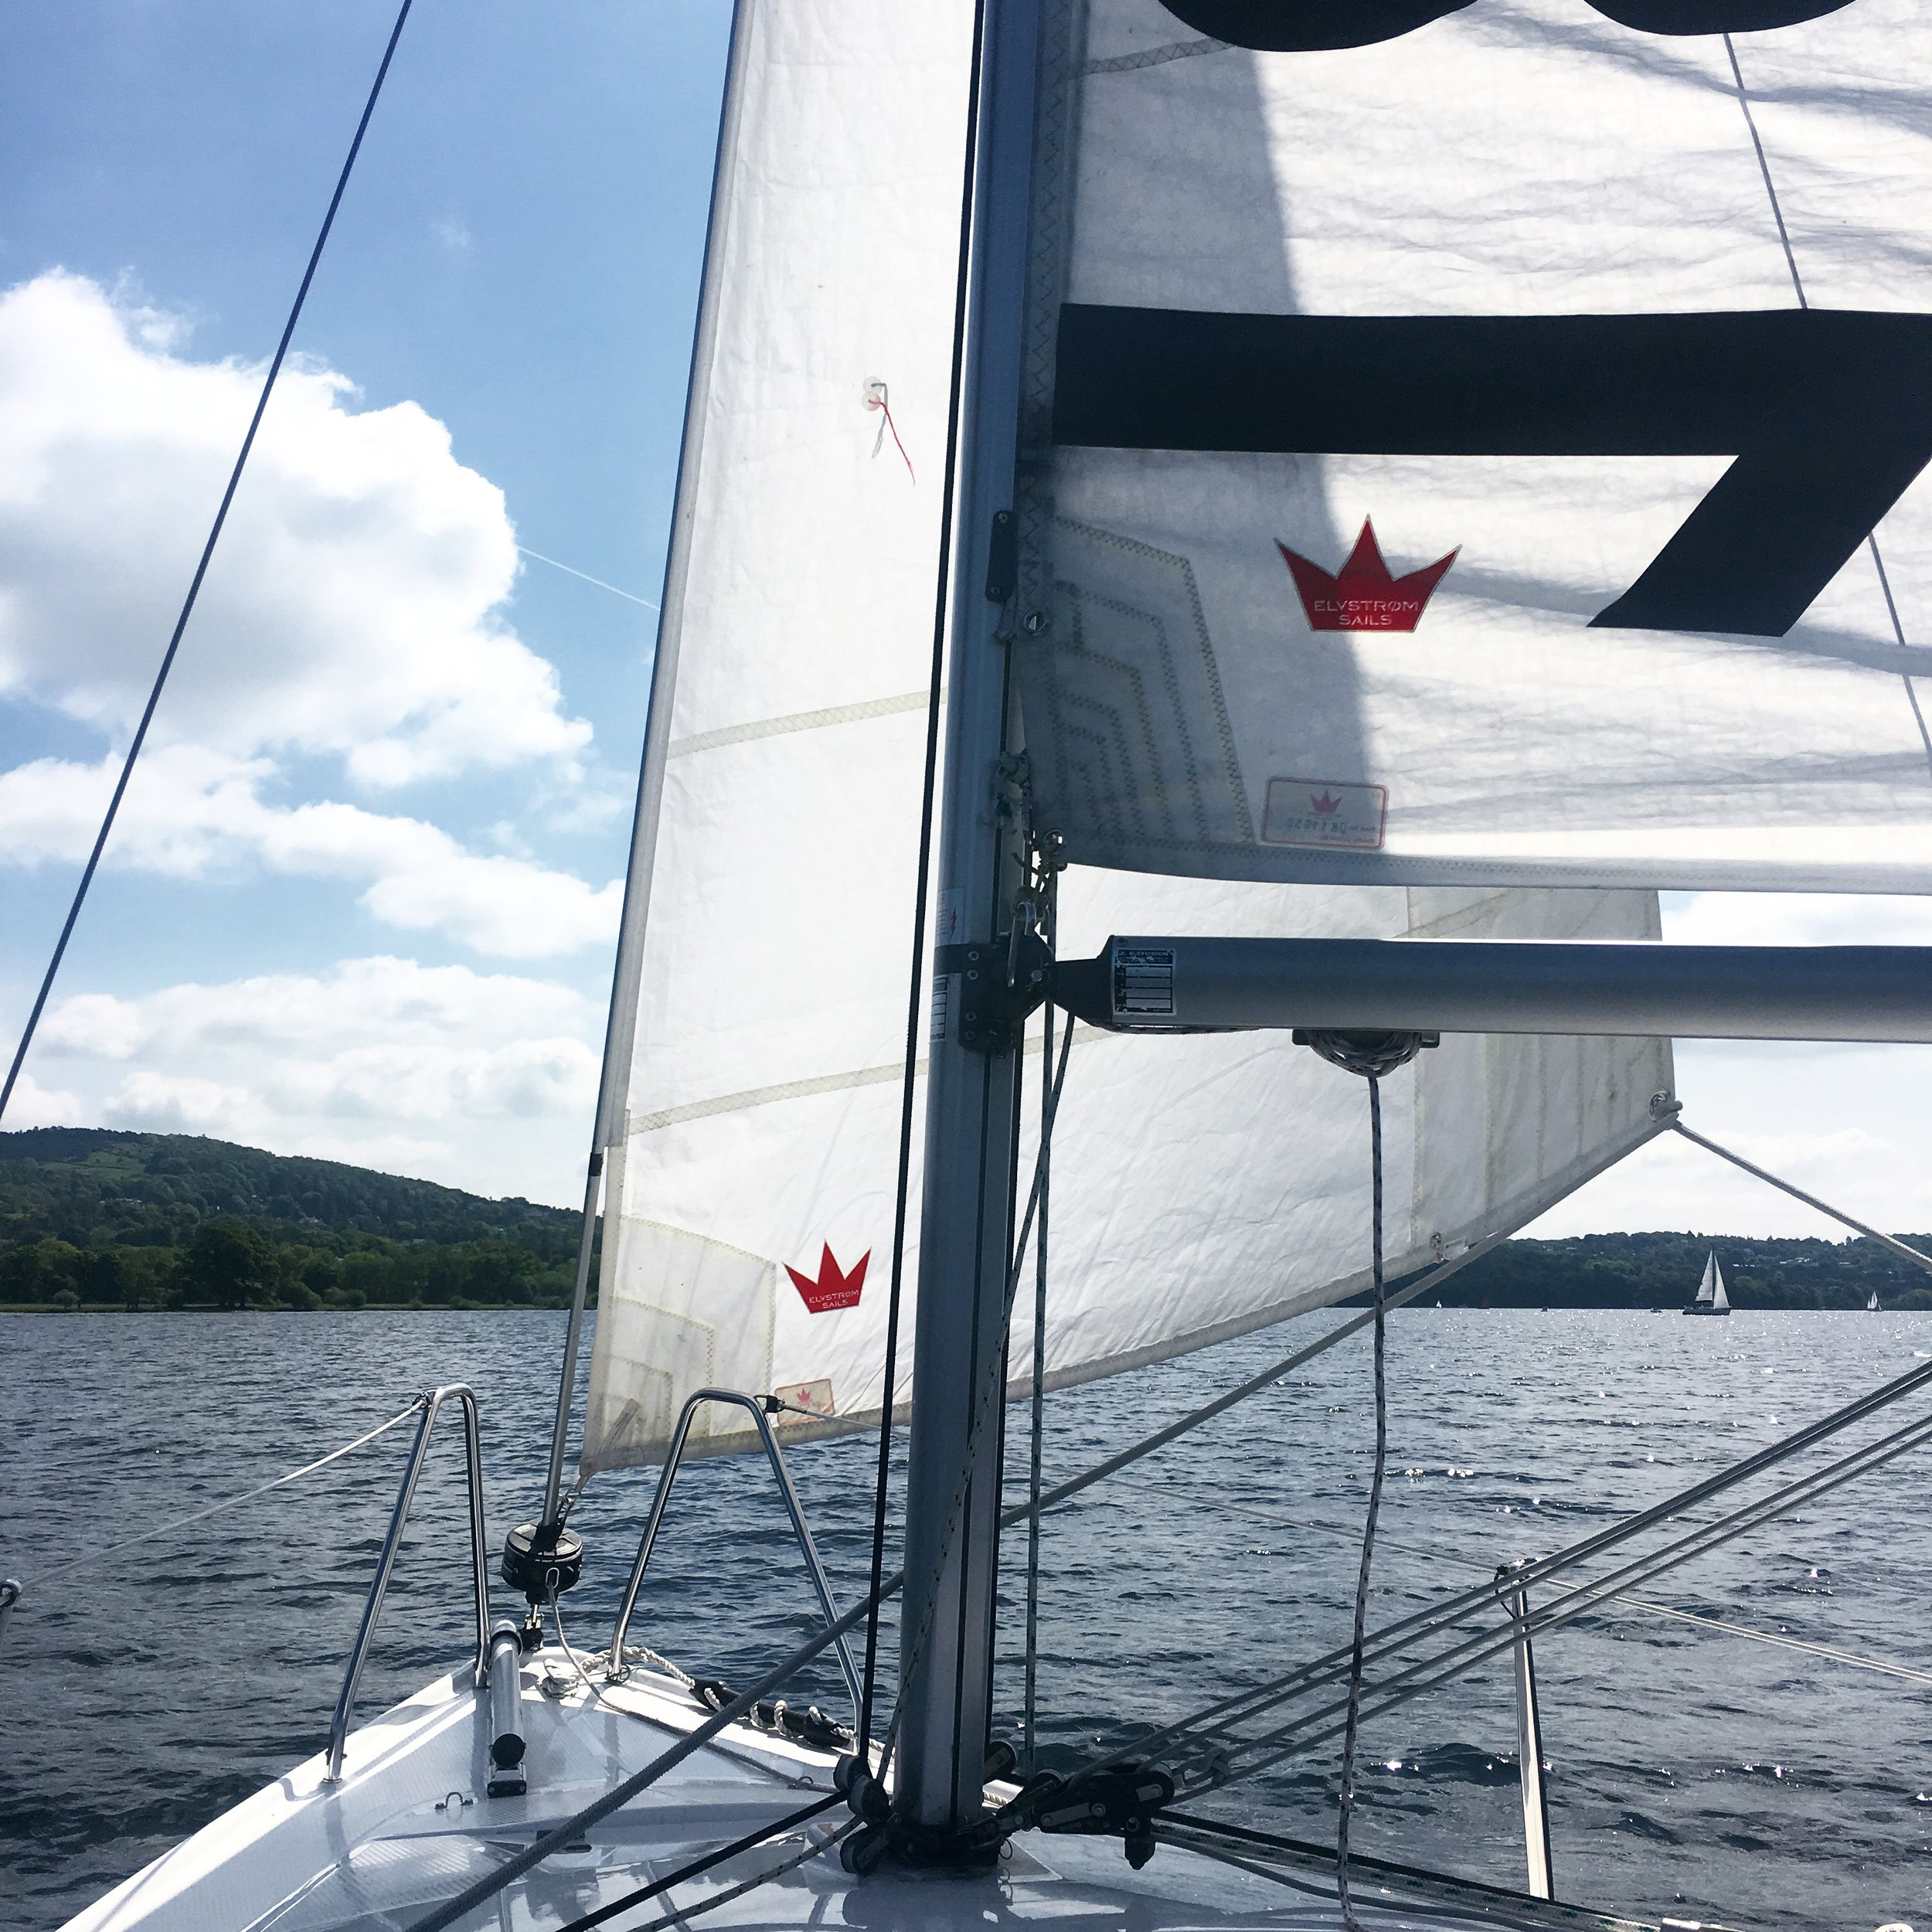 Lozidaze_LakeDistrict_Sailing_01